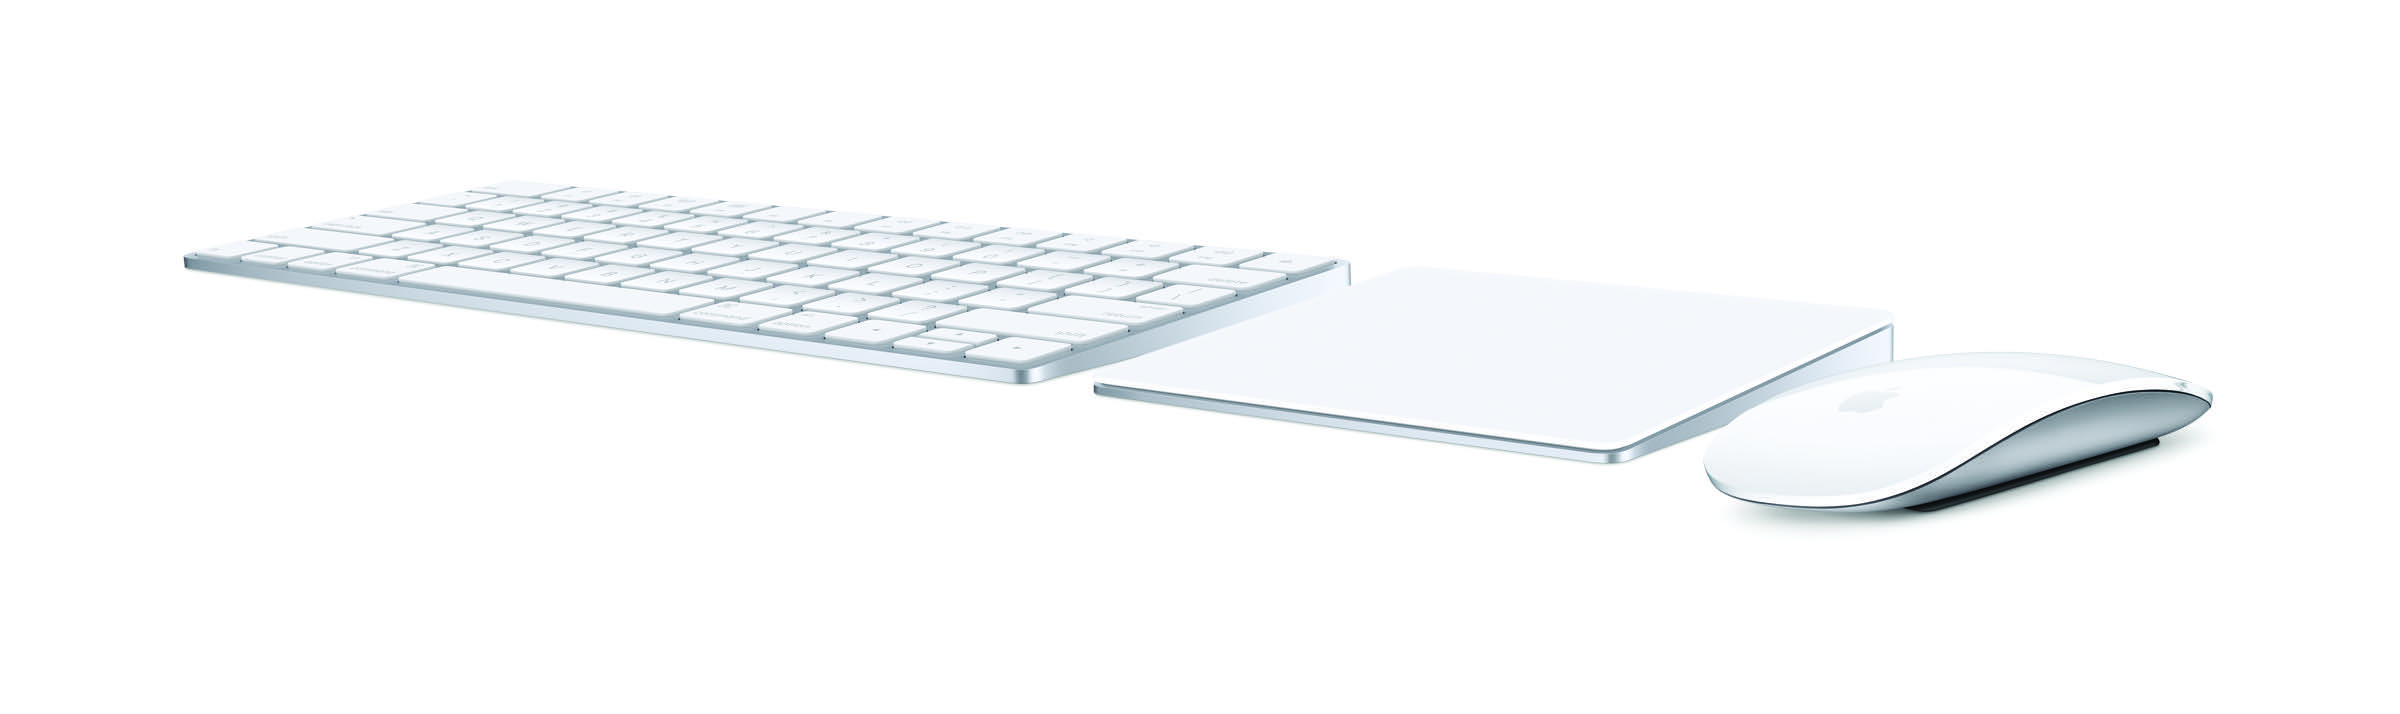 Magic Keyboard, Magic Mouse 2 und Magic Trackpad 2